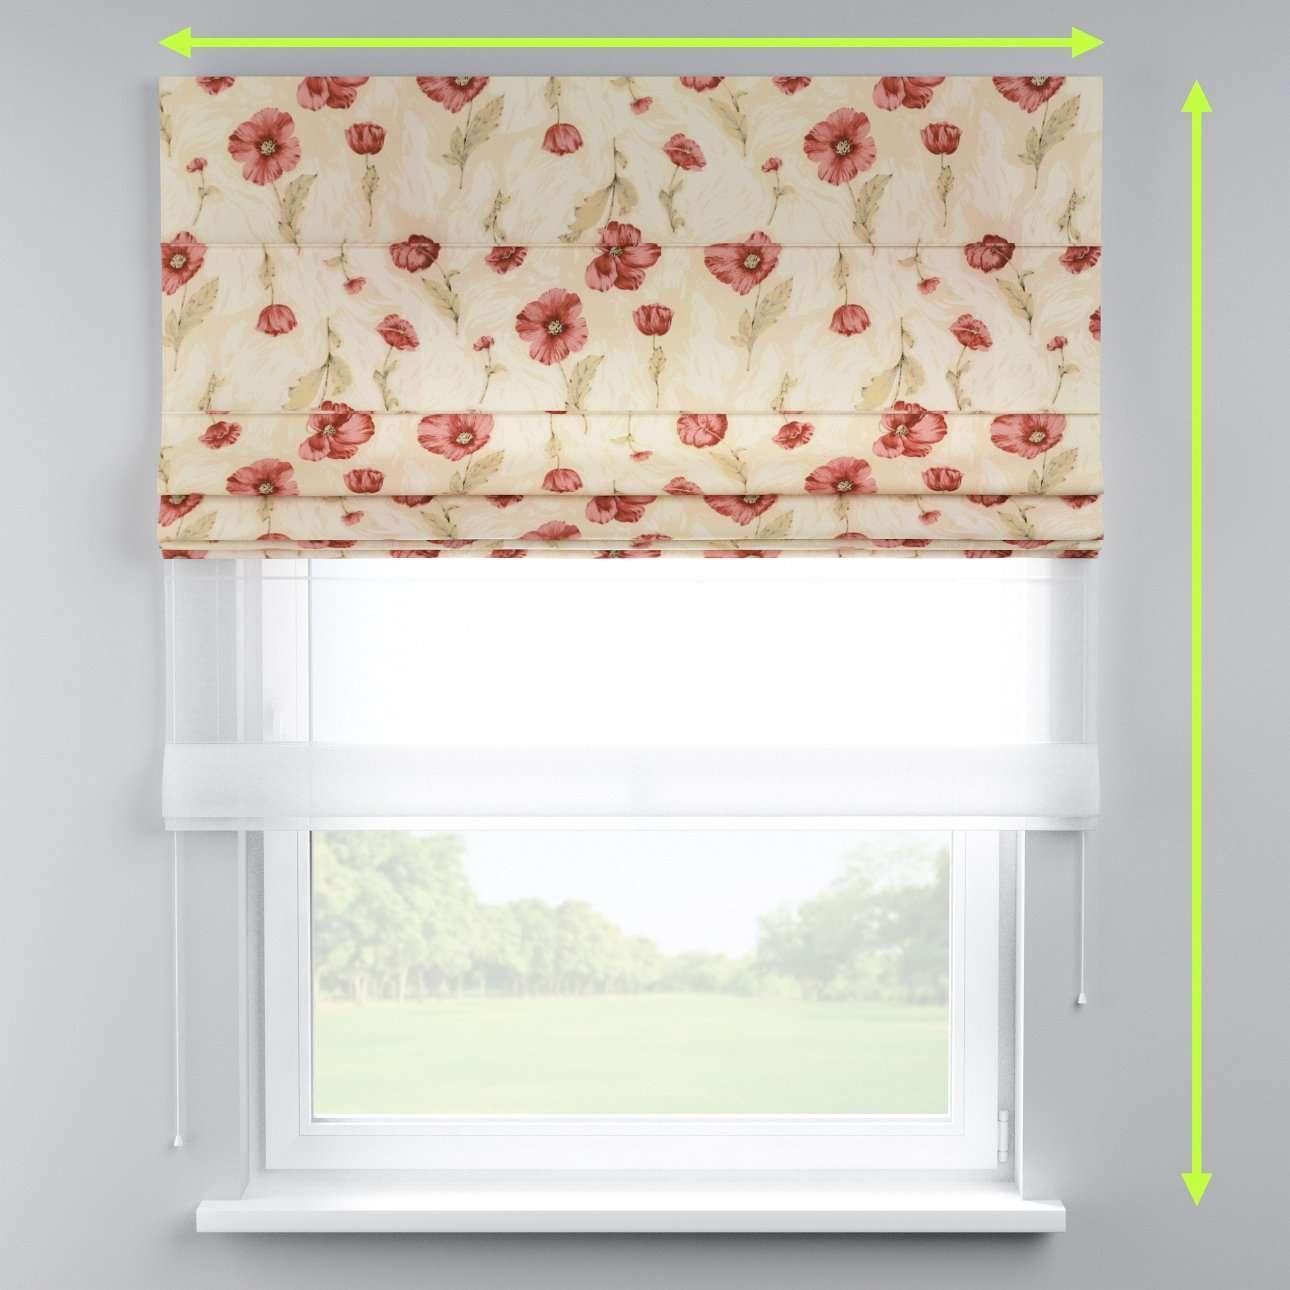 Voile and fabric roman blind (DUO II) in collection Flowers, fabric: 303-01